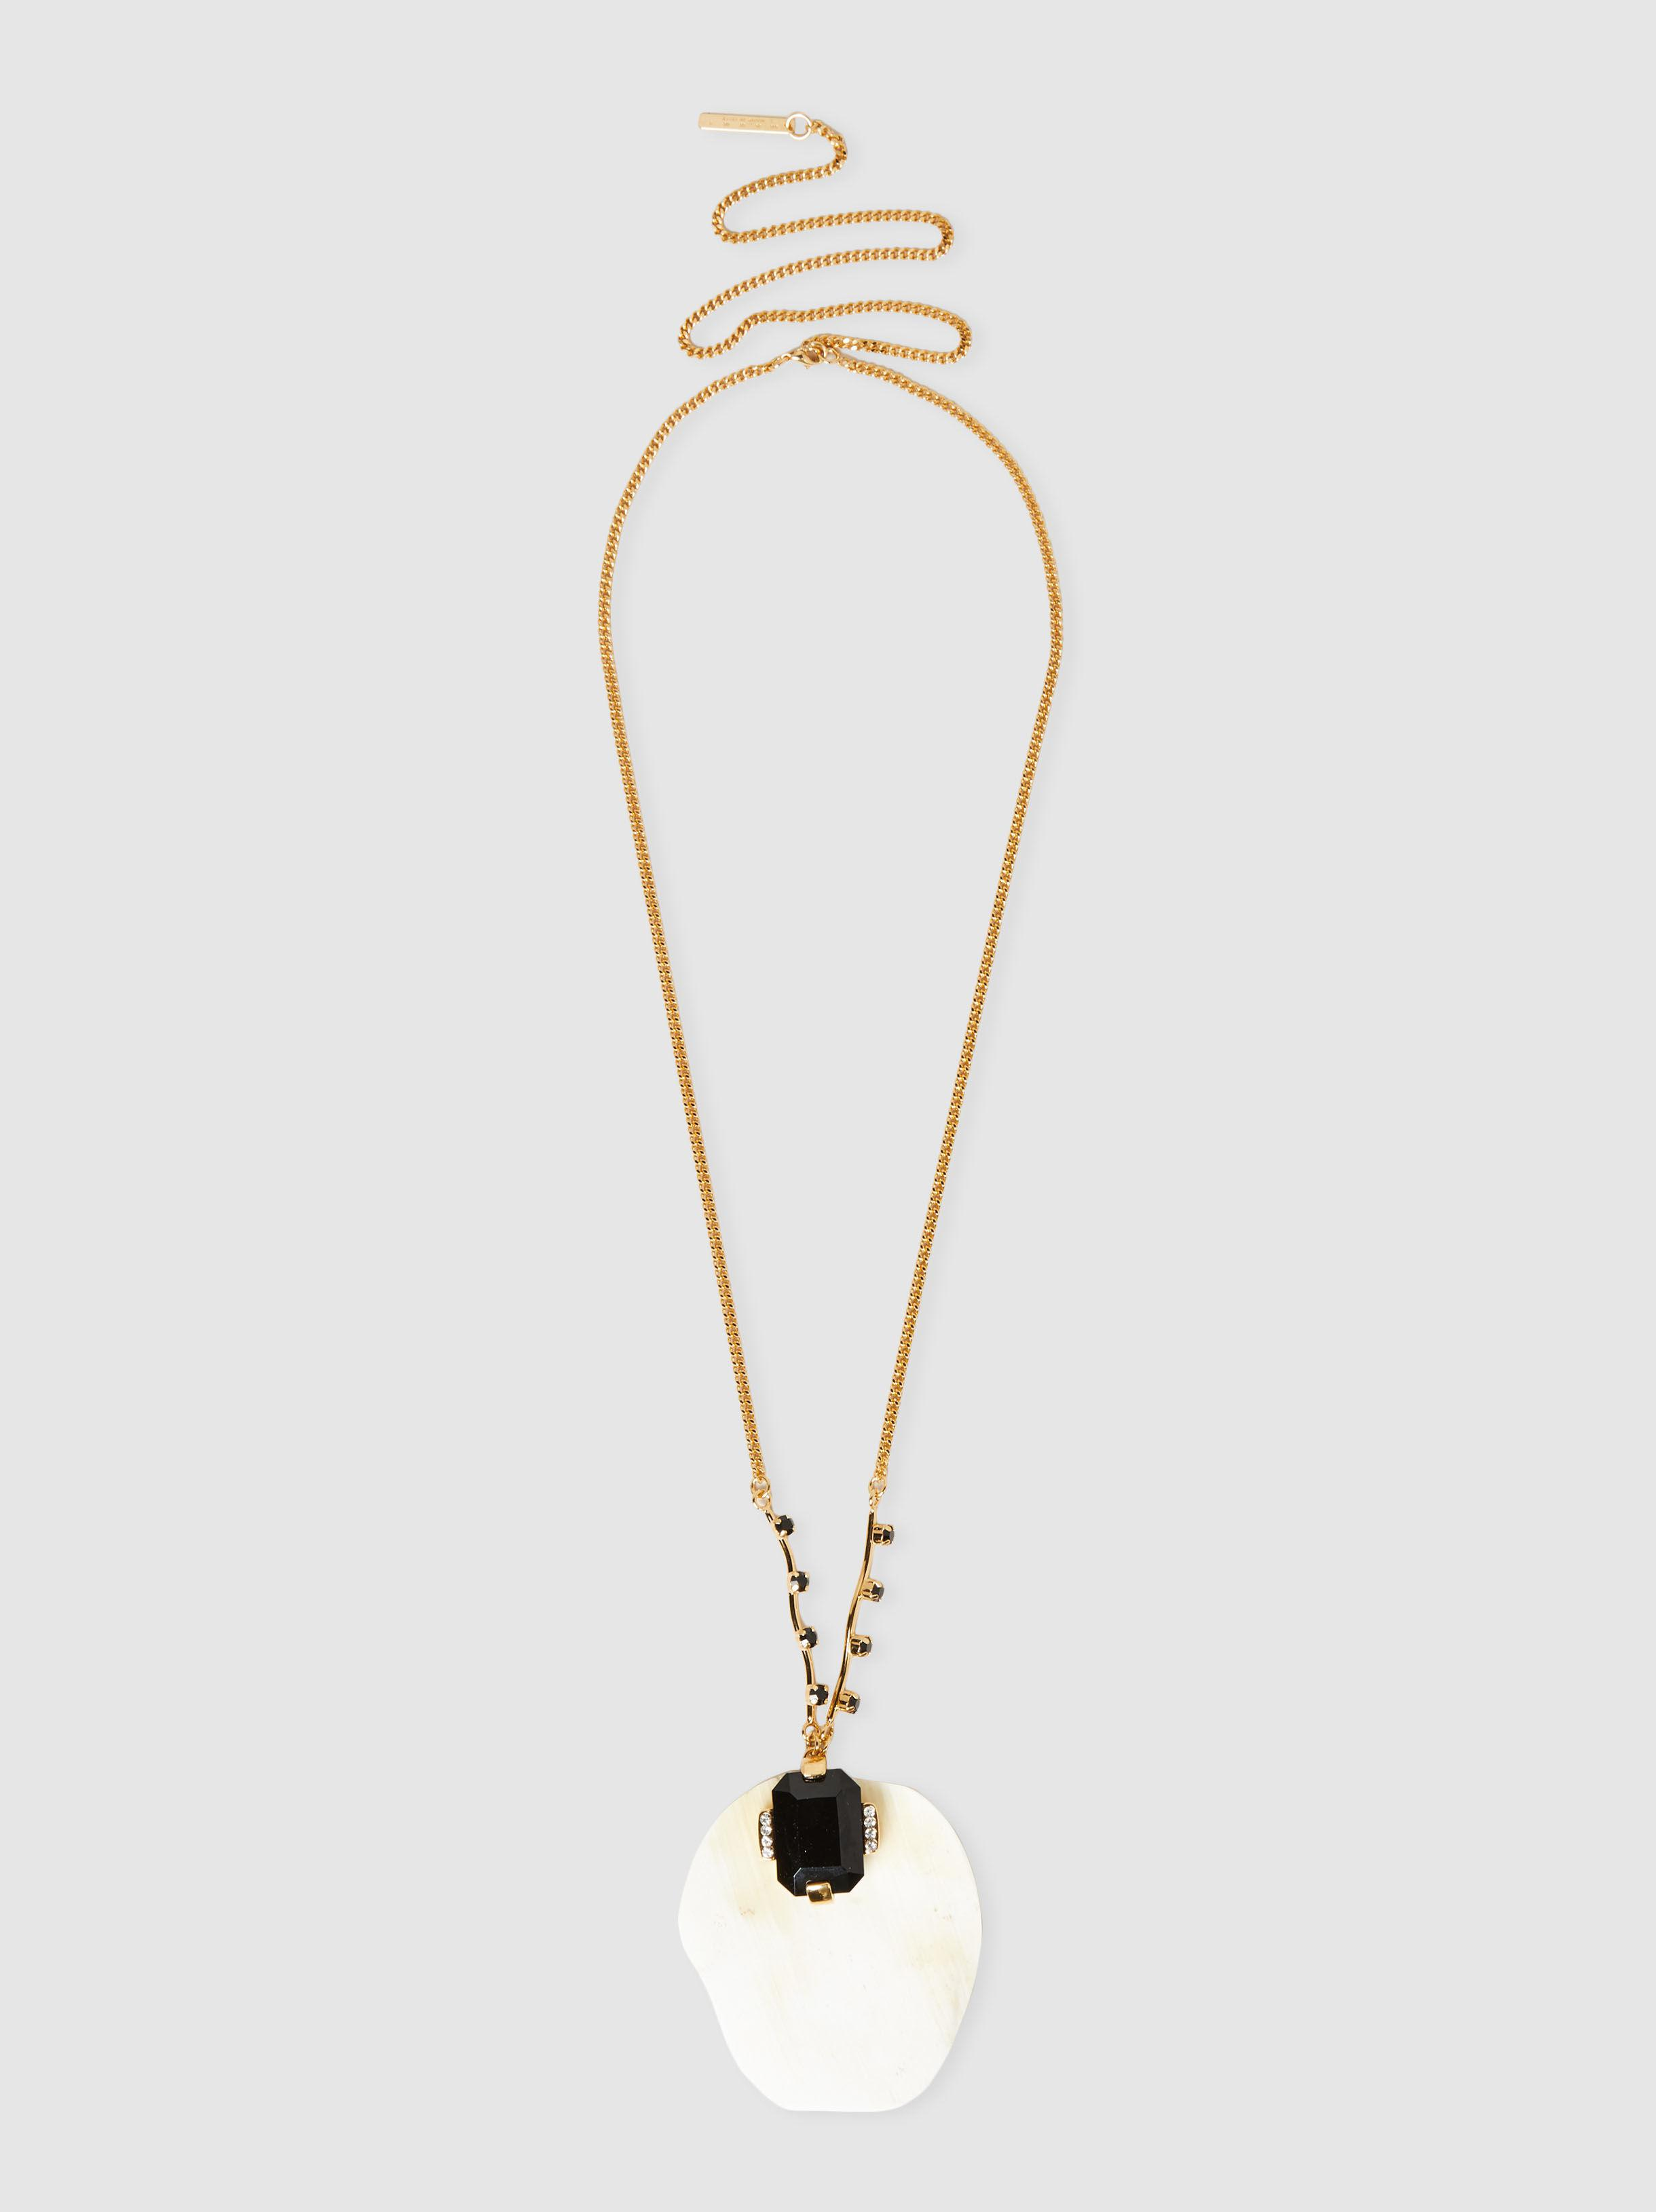 Marni geometric shapes double necklace - Metallic